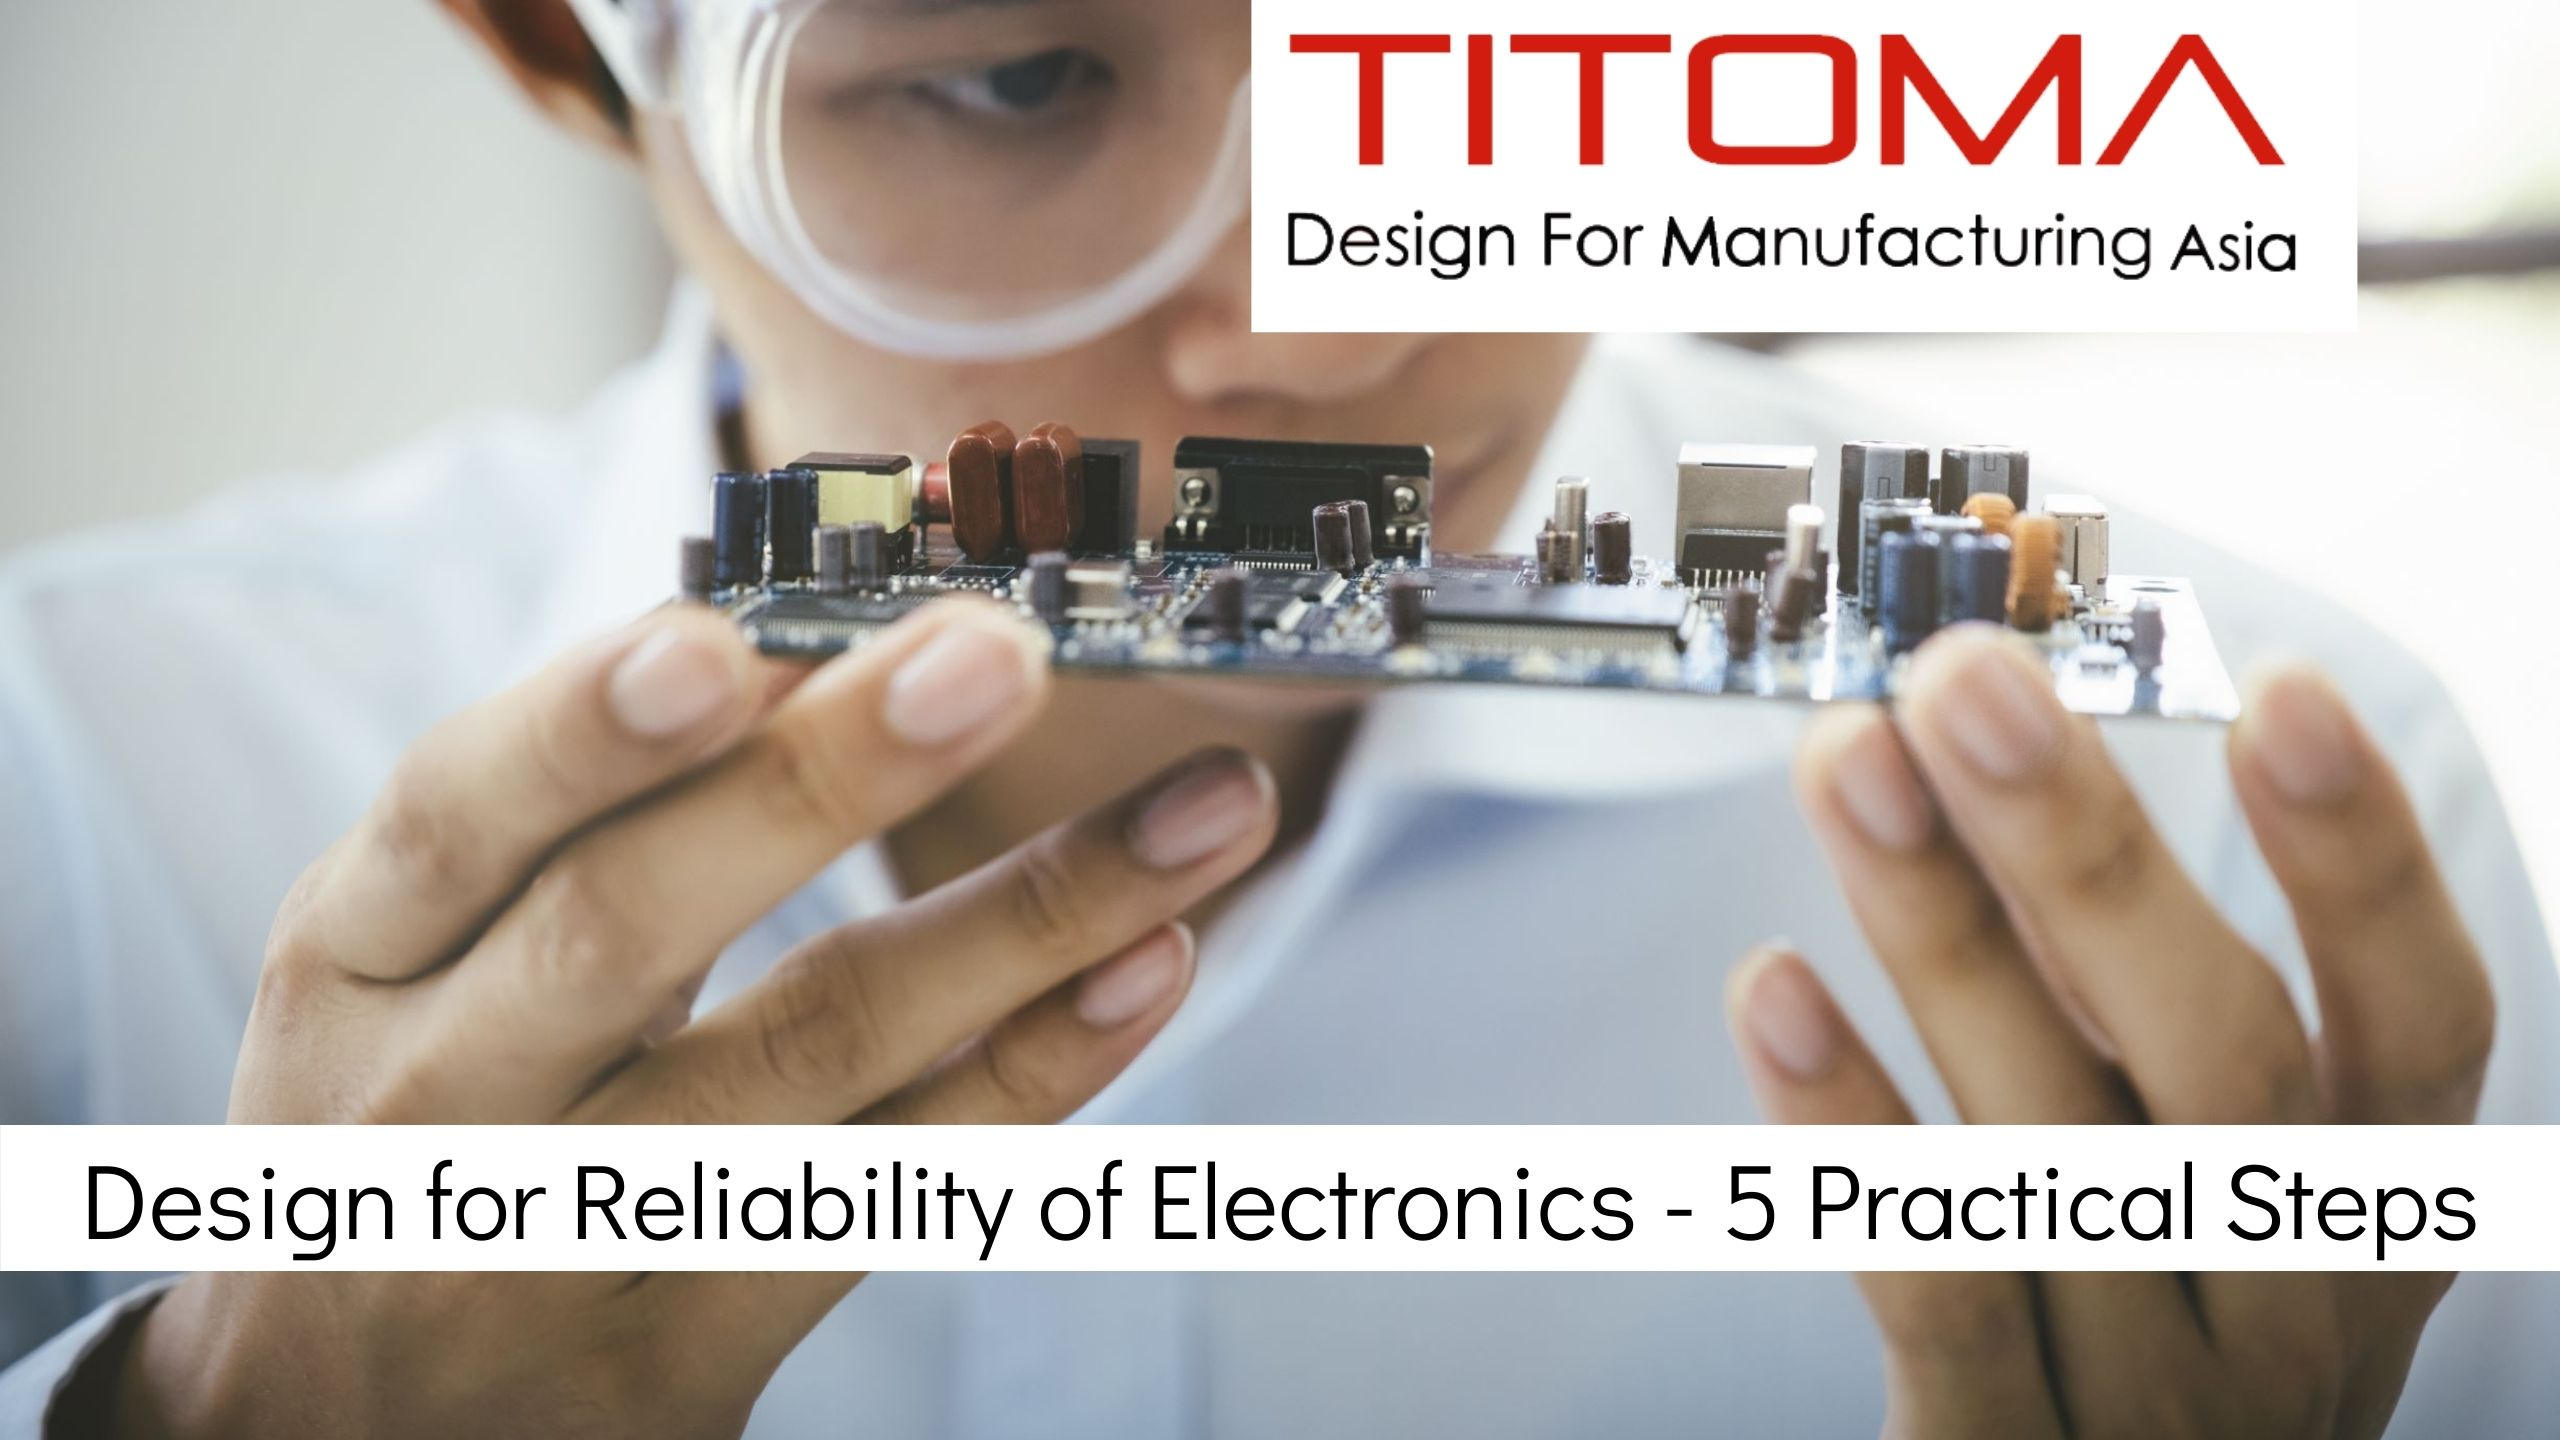 Design for Reliability of Electronics